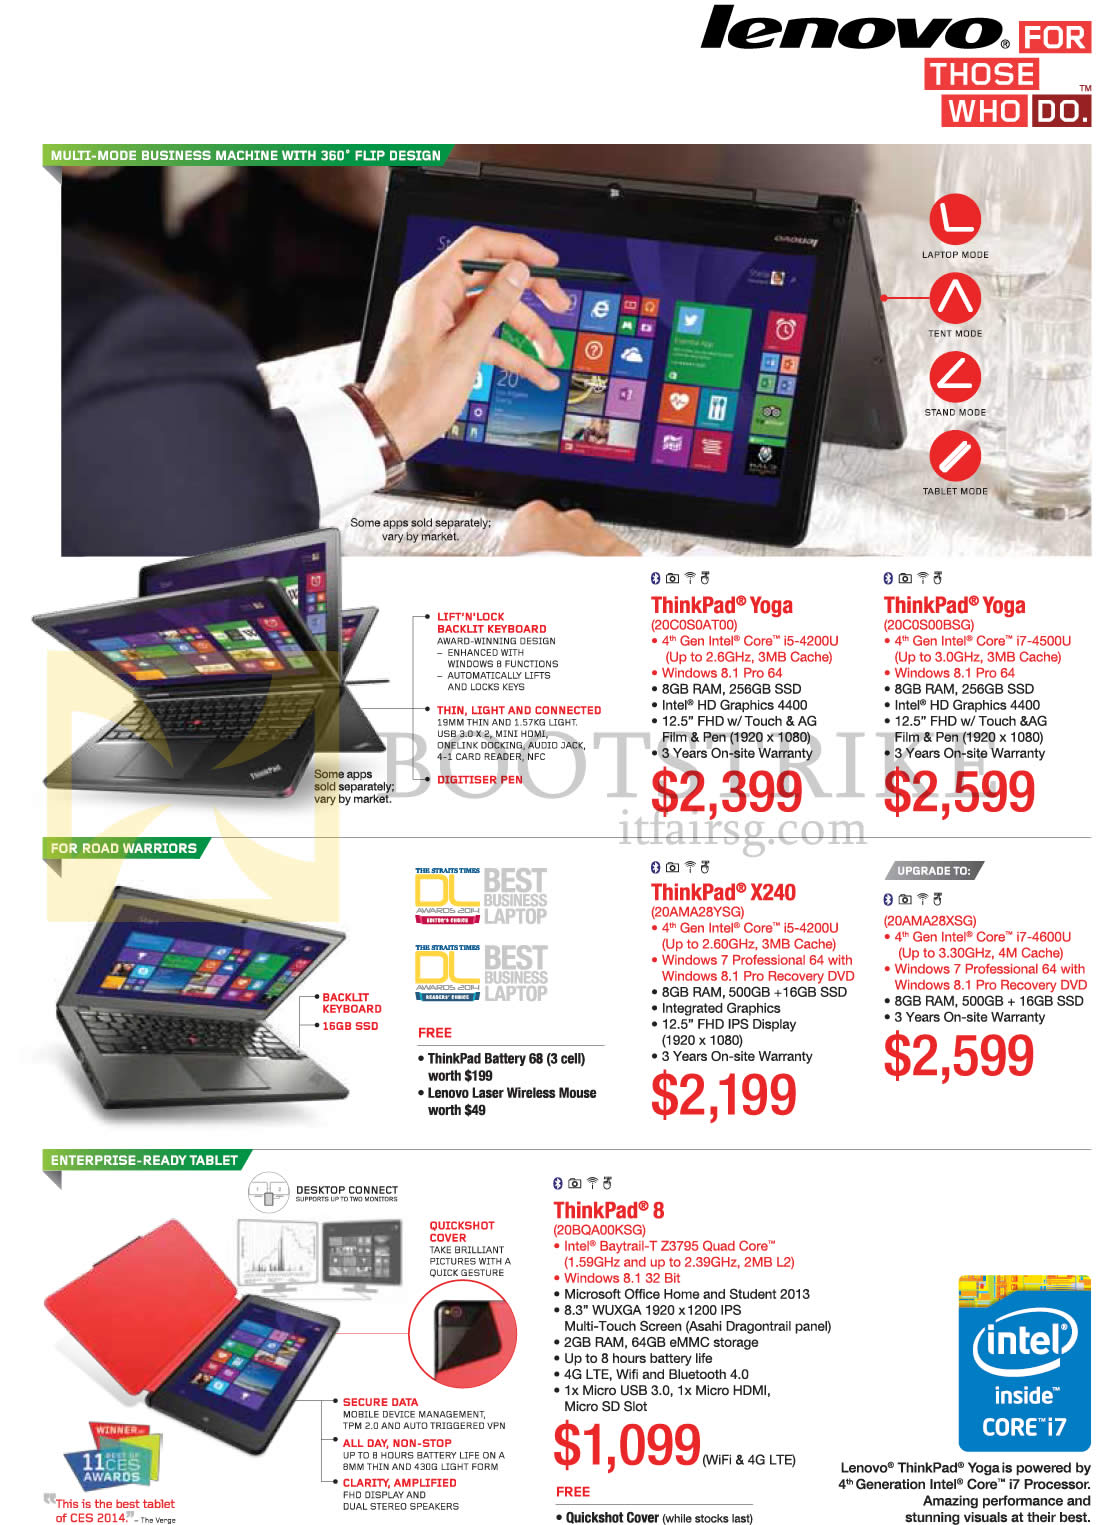 COMEX 2014 price list image brochure of Lenovo Notebooks Tablets ThinkPad Yoga, ThinkPad X240, ThinkPad 8